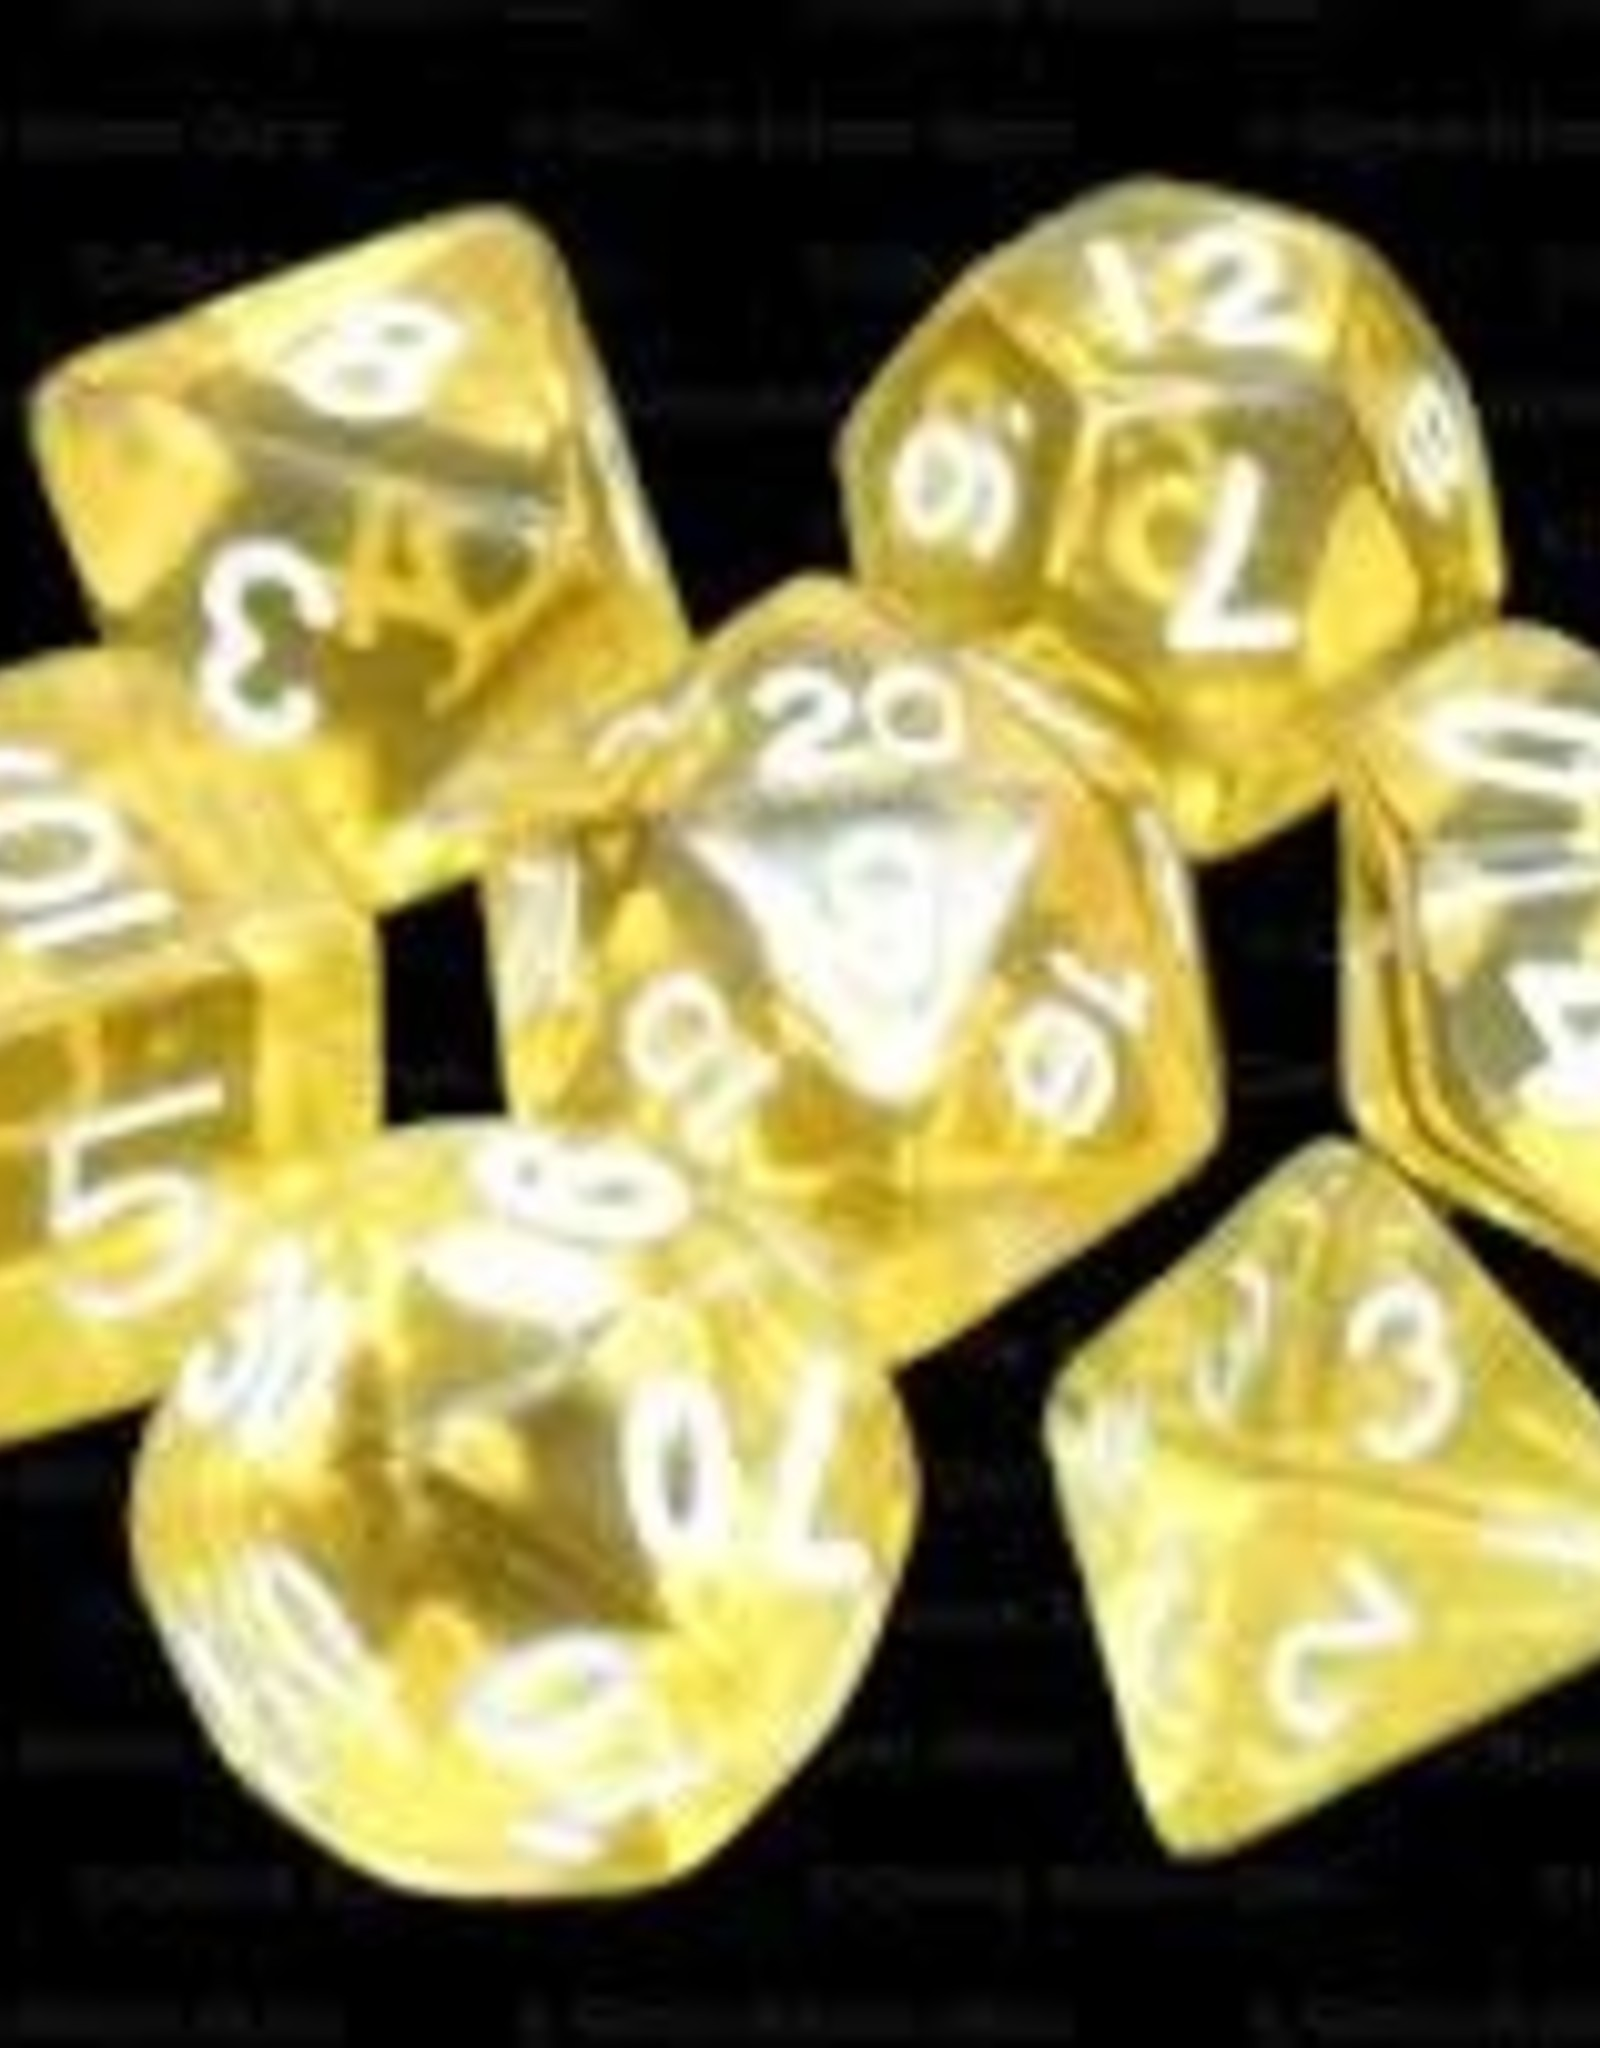 Chessex Dice - 7pc Yellow & White